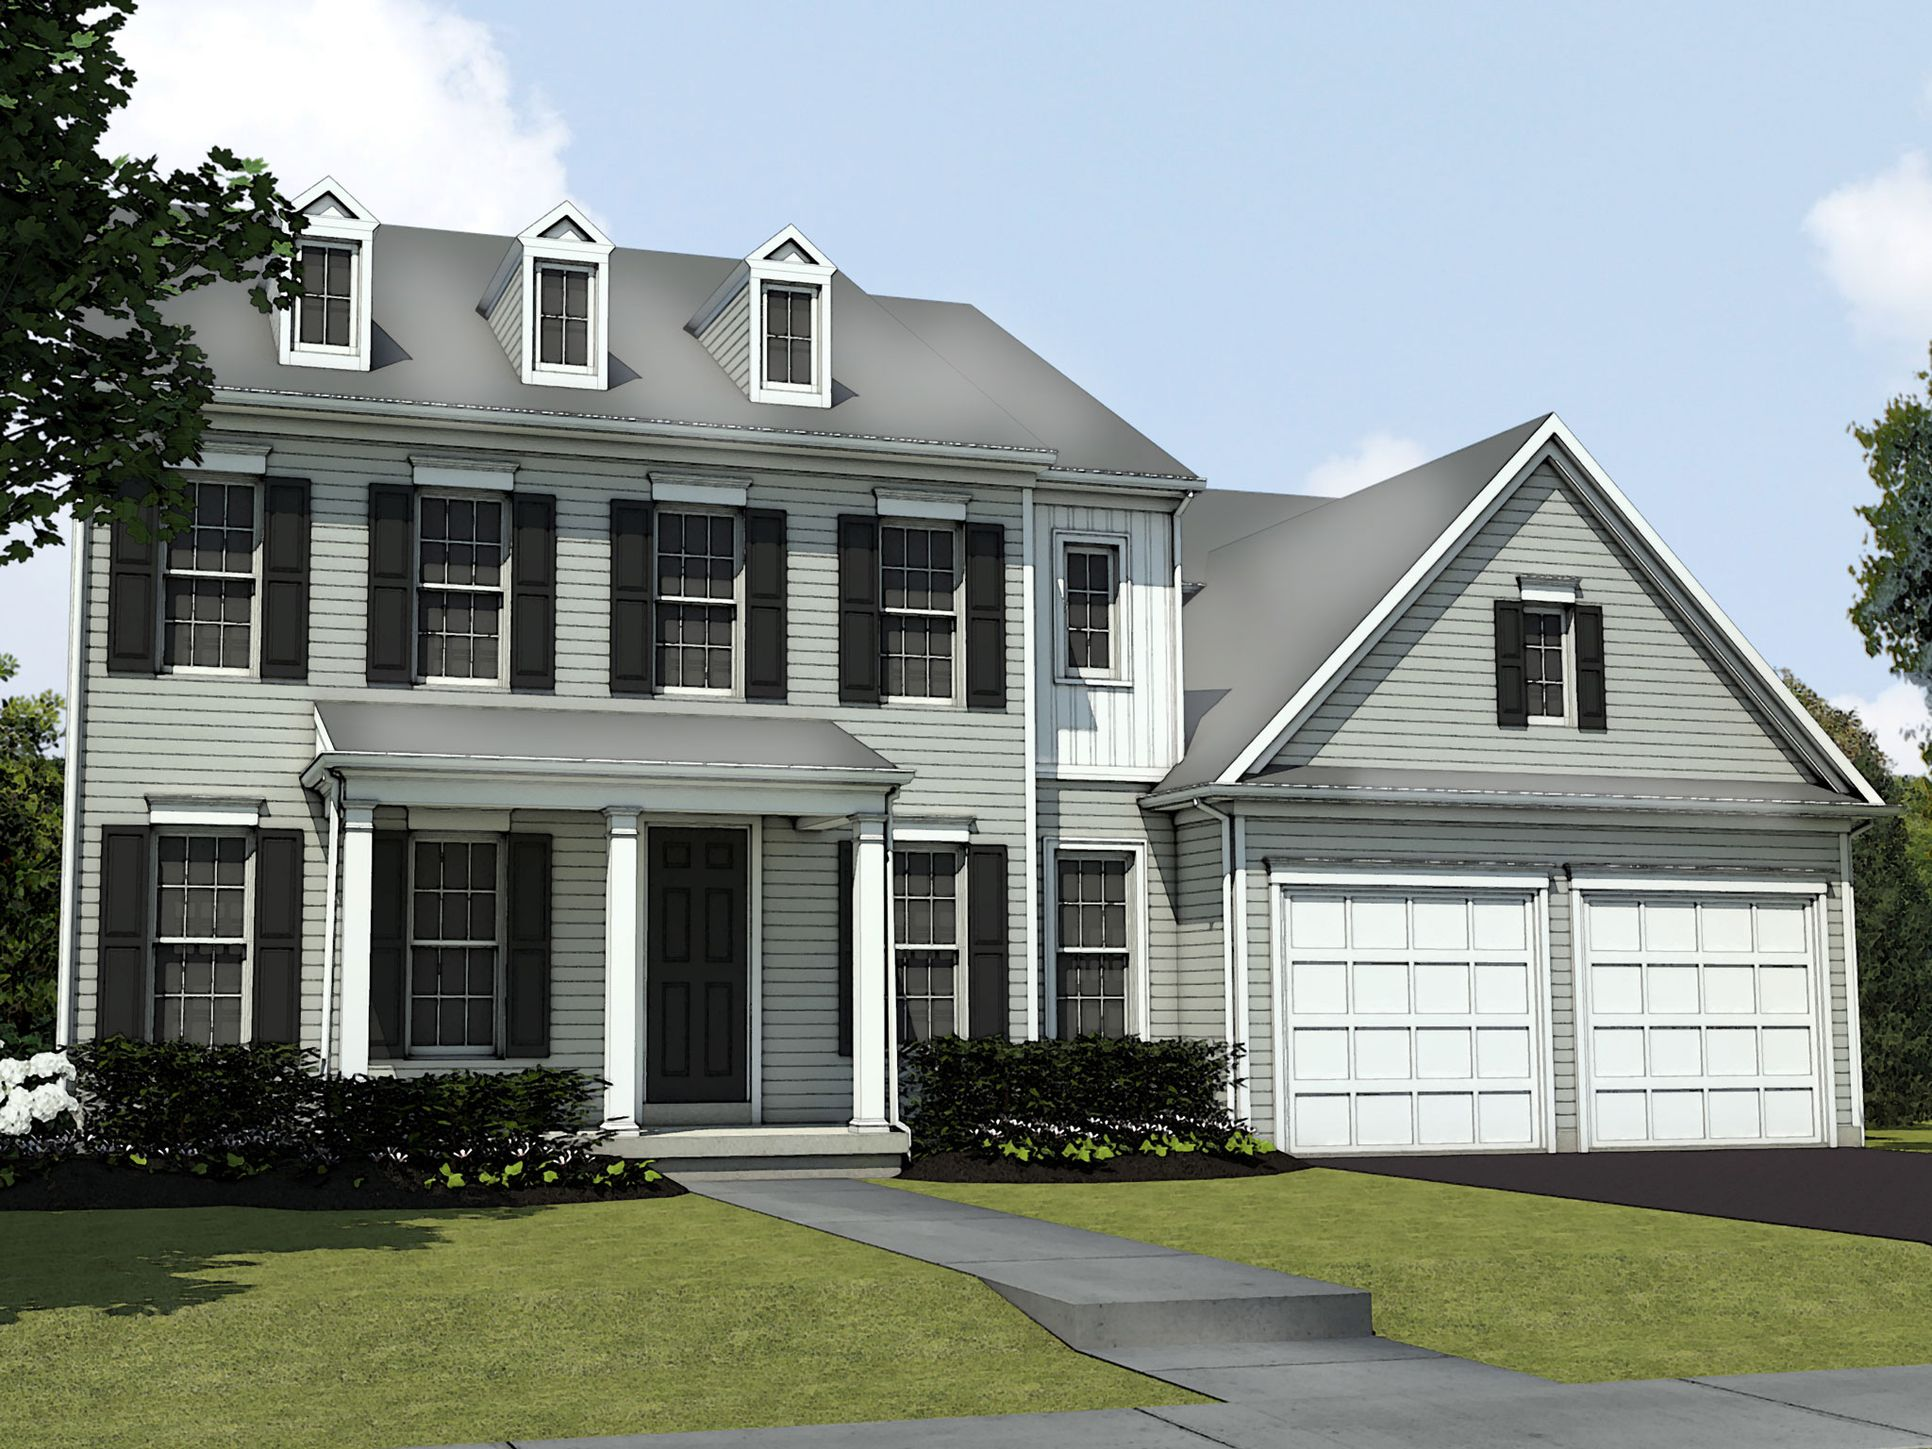 The Mayfair:Classic Elevation Rendering